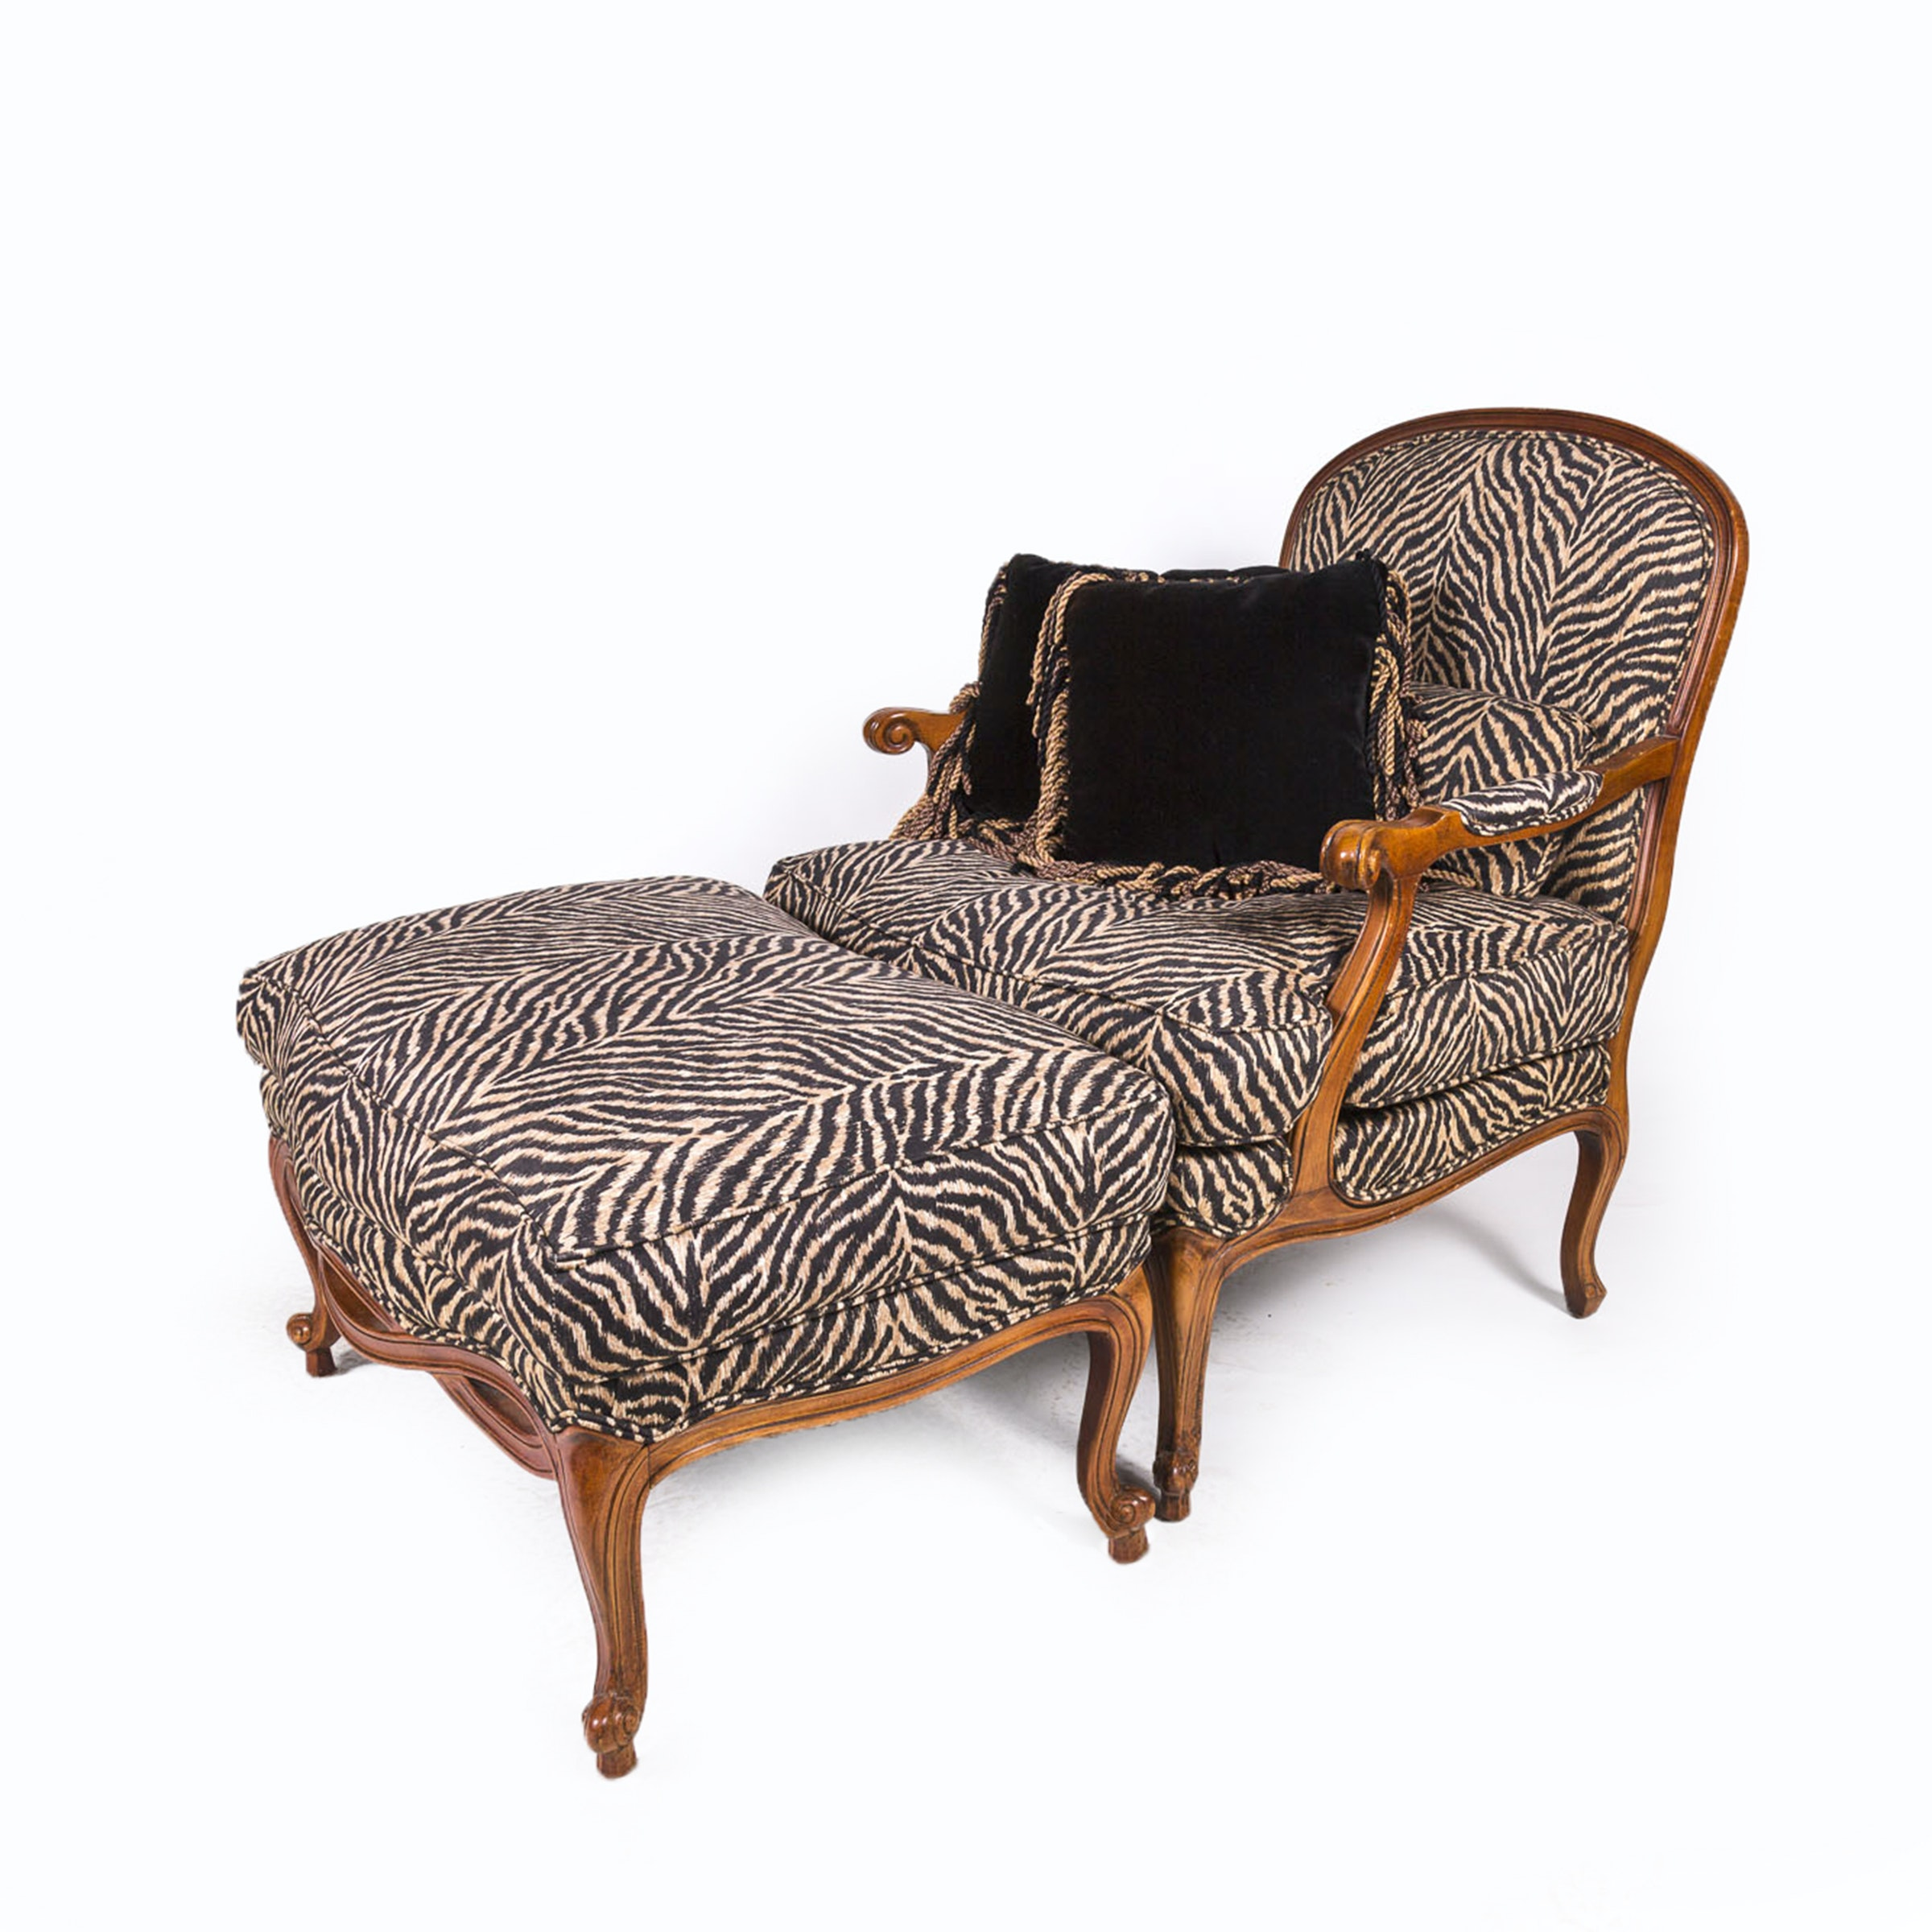 Louis XV Style Fauteuil with Ottoman by Ethan Allen